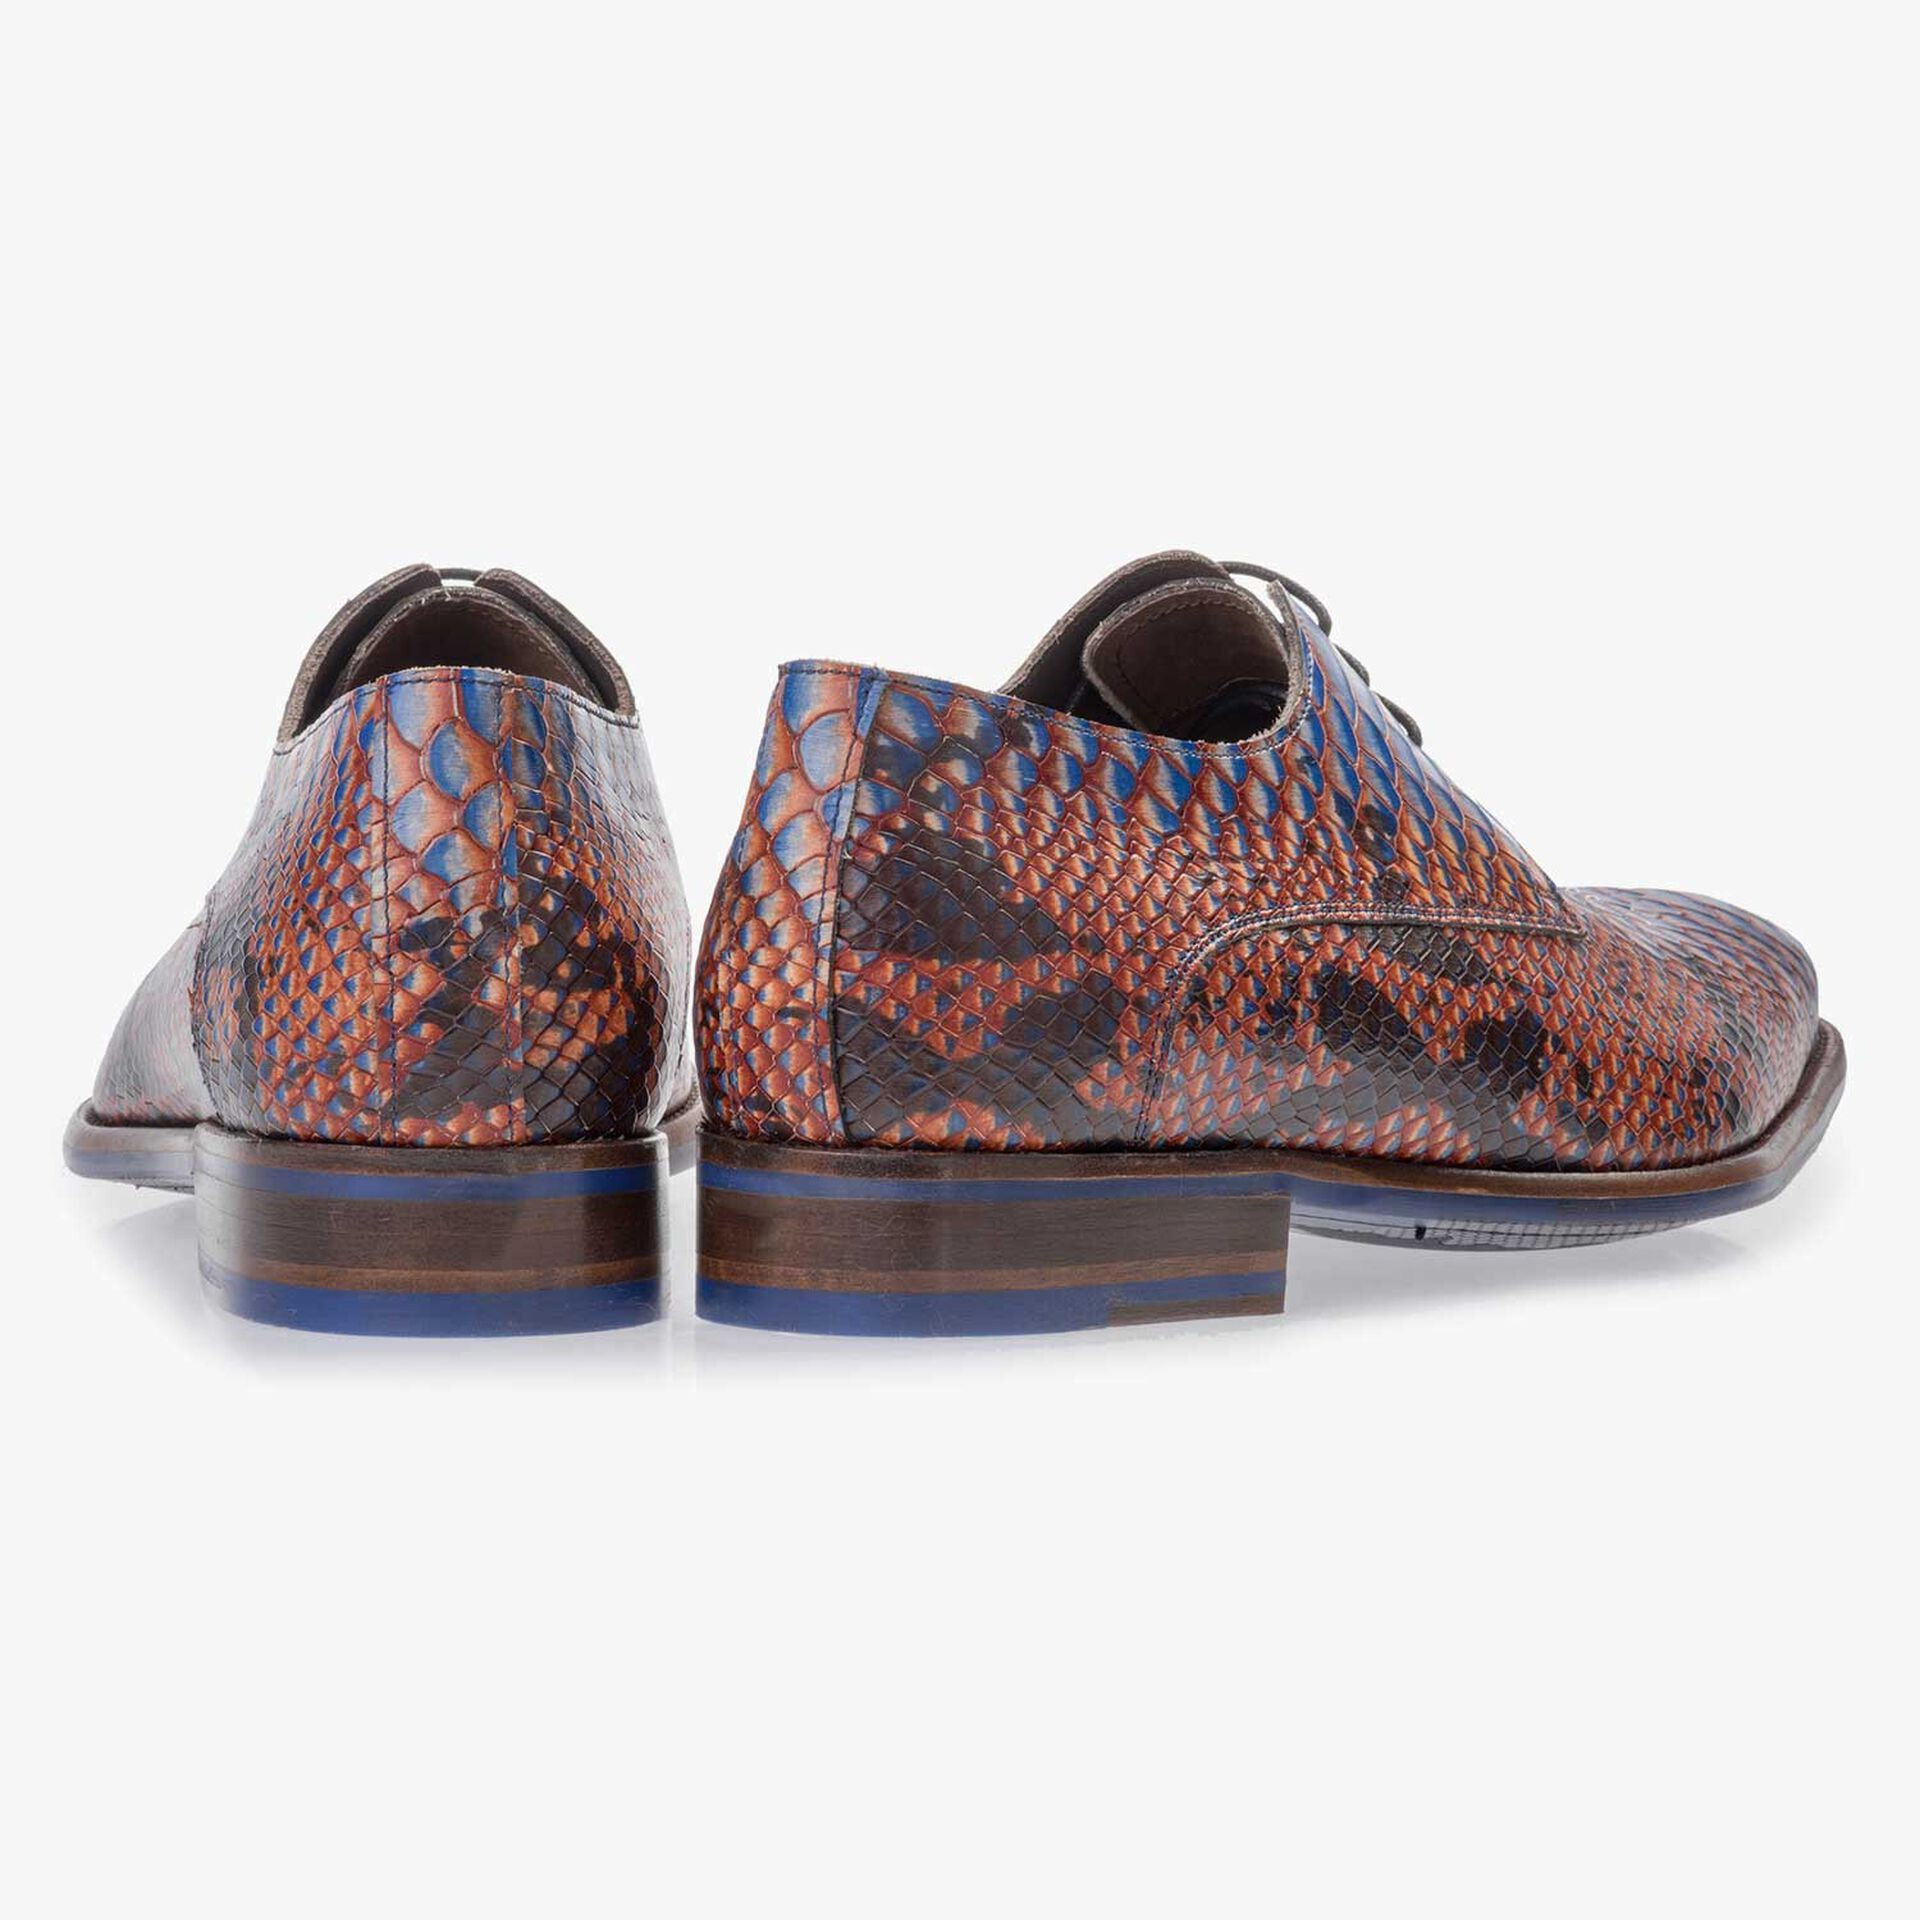 Blue leather lace shoe with snake print